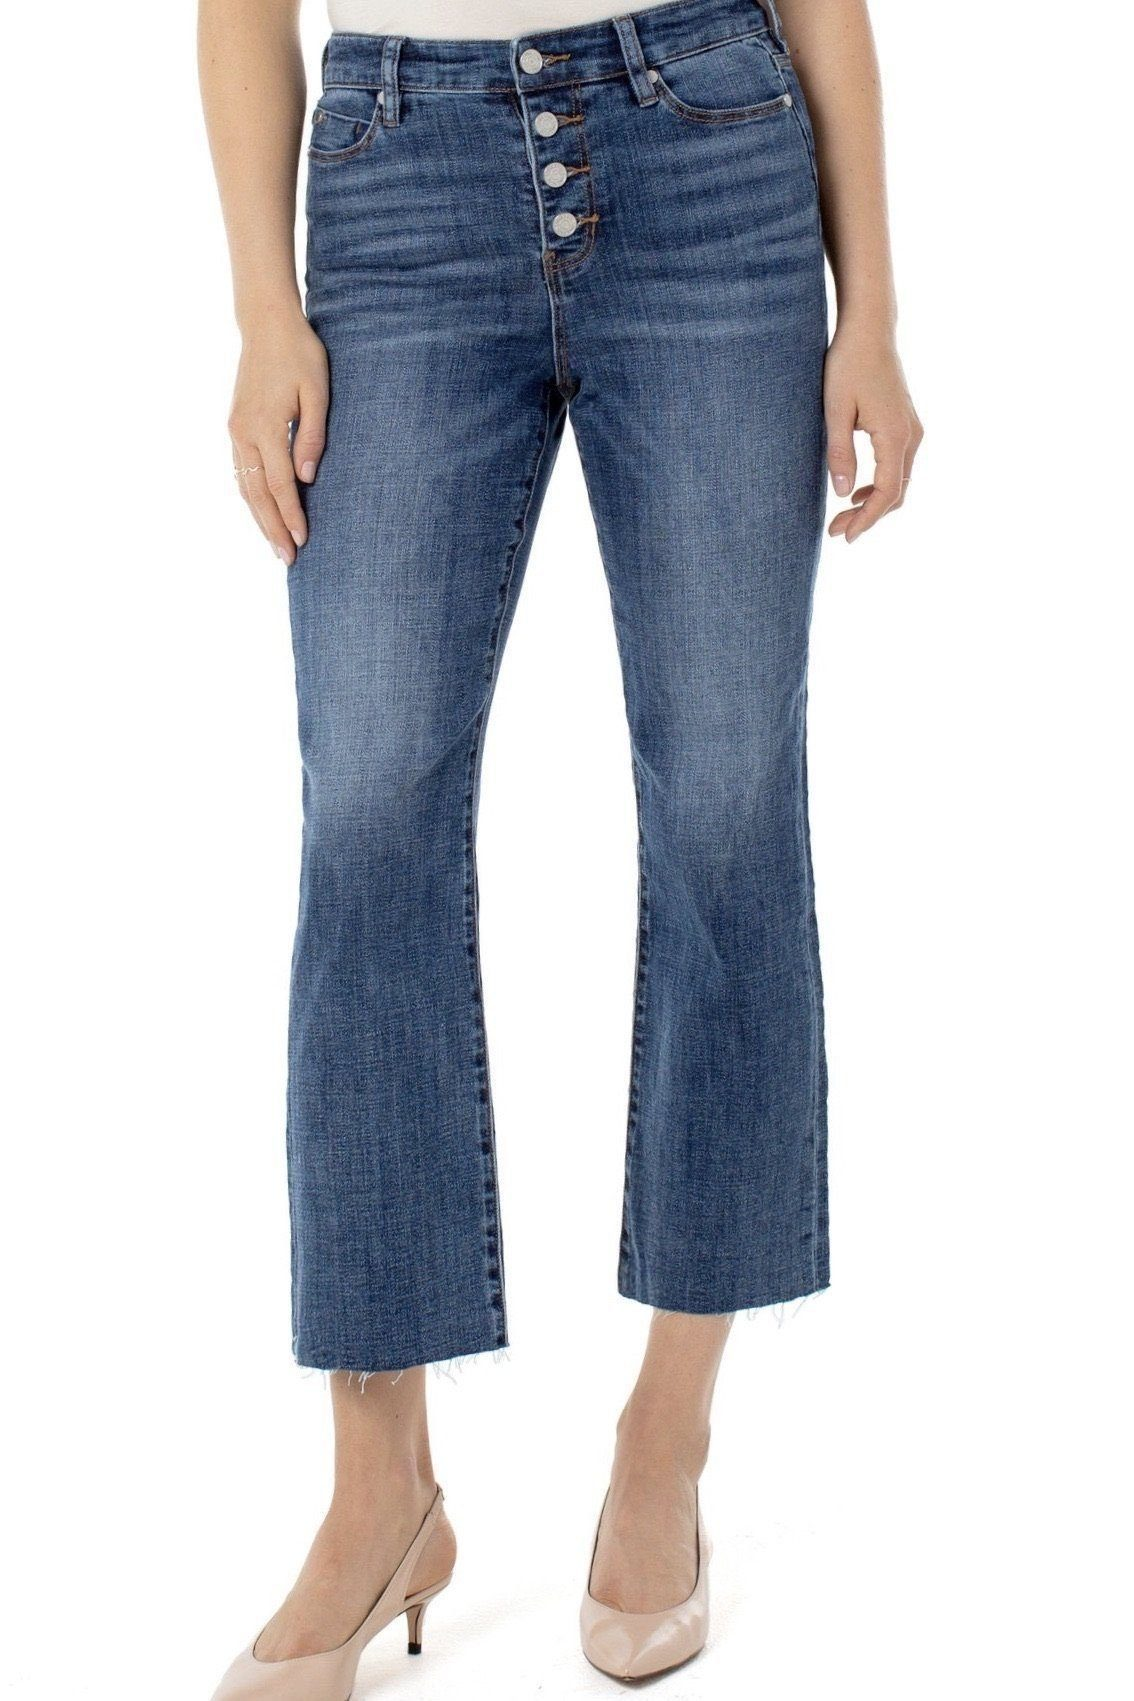 Stevie Hi-Rise Stovepipe JEANS LIVERPOOL